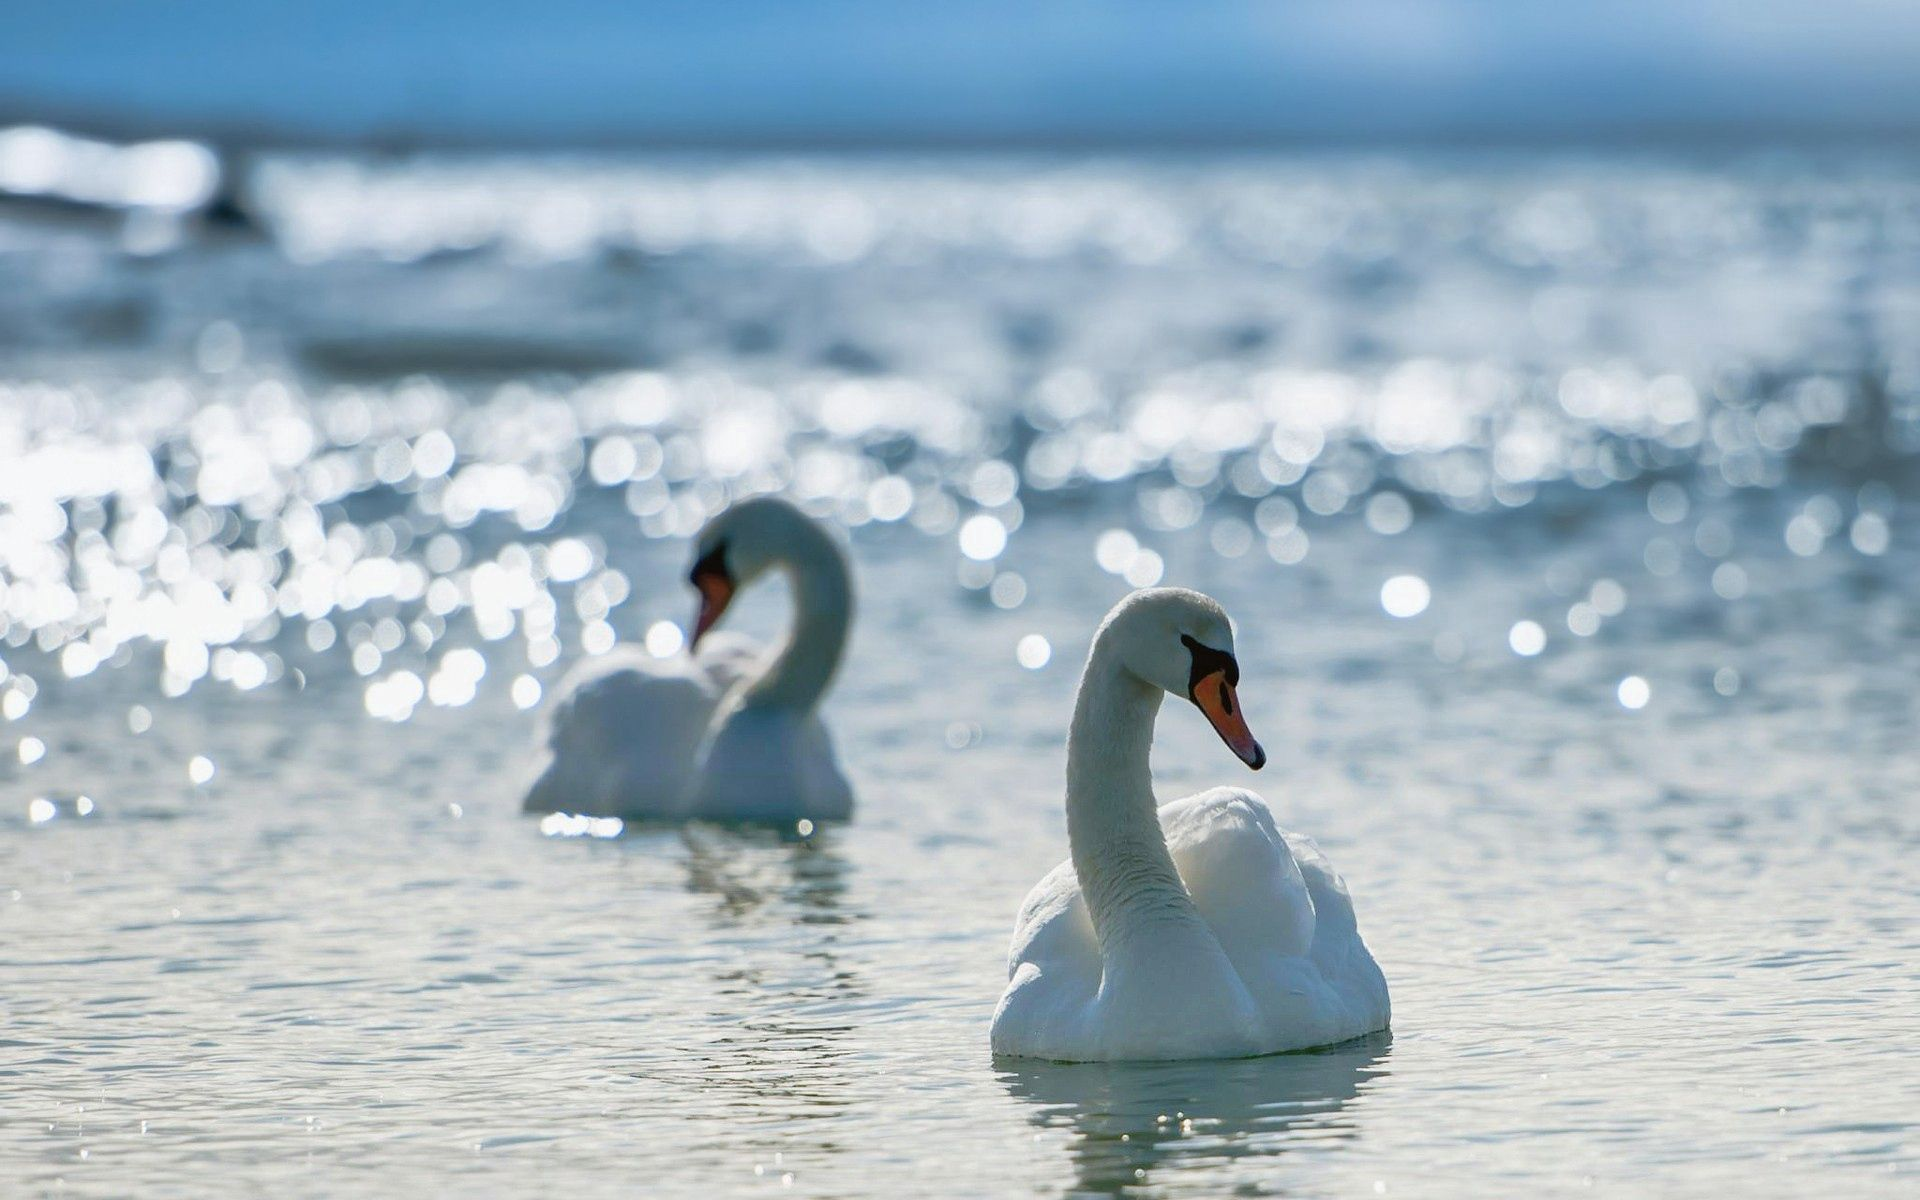 101847 download wallpaper Animals, Swans, Water, To Swim, Swim, Birds screensavers and pictures for free